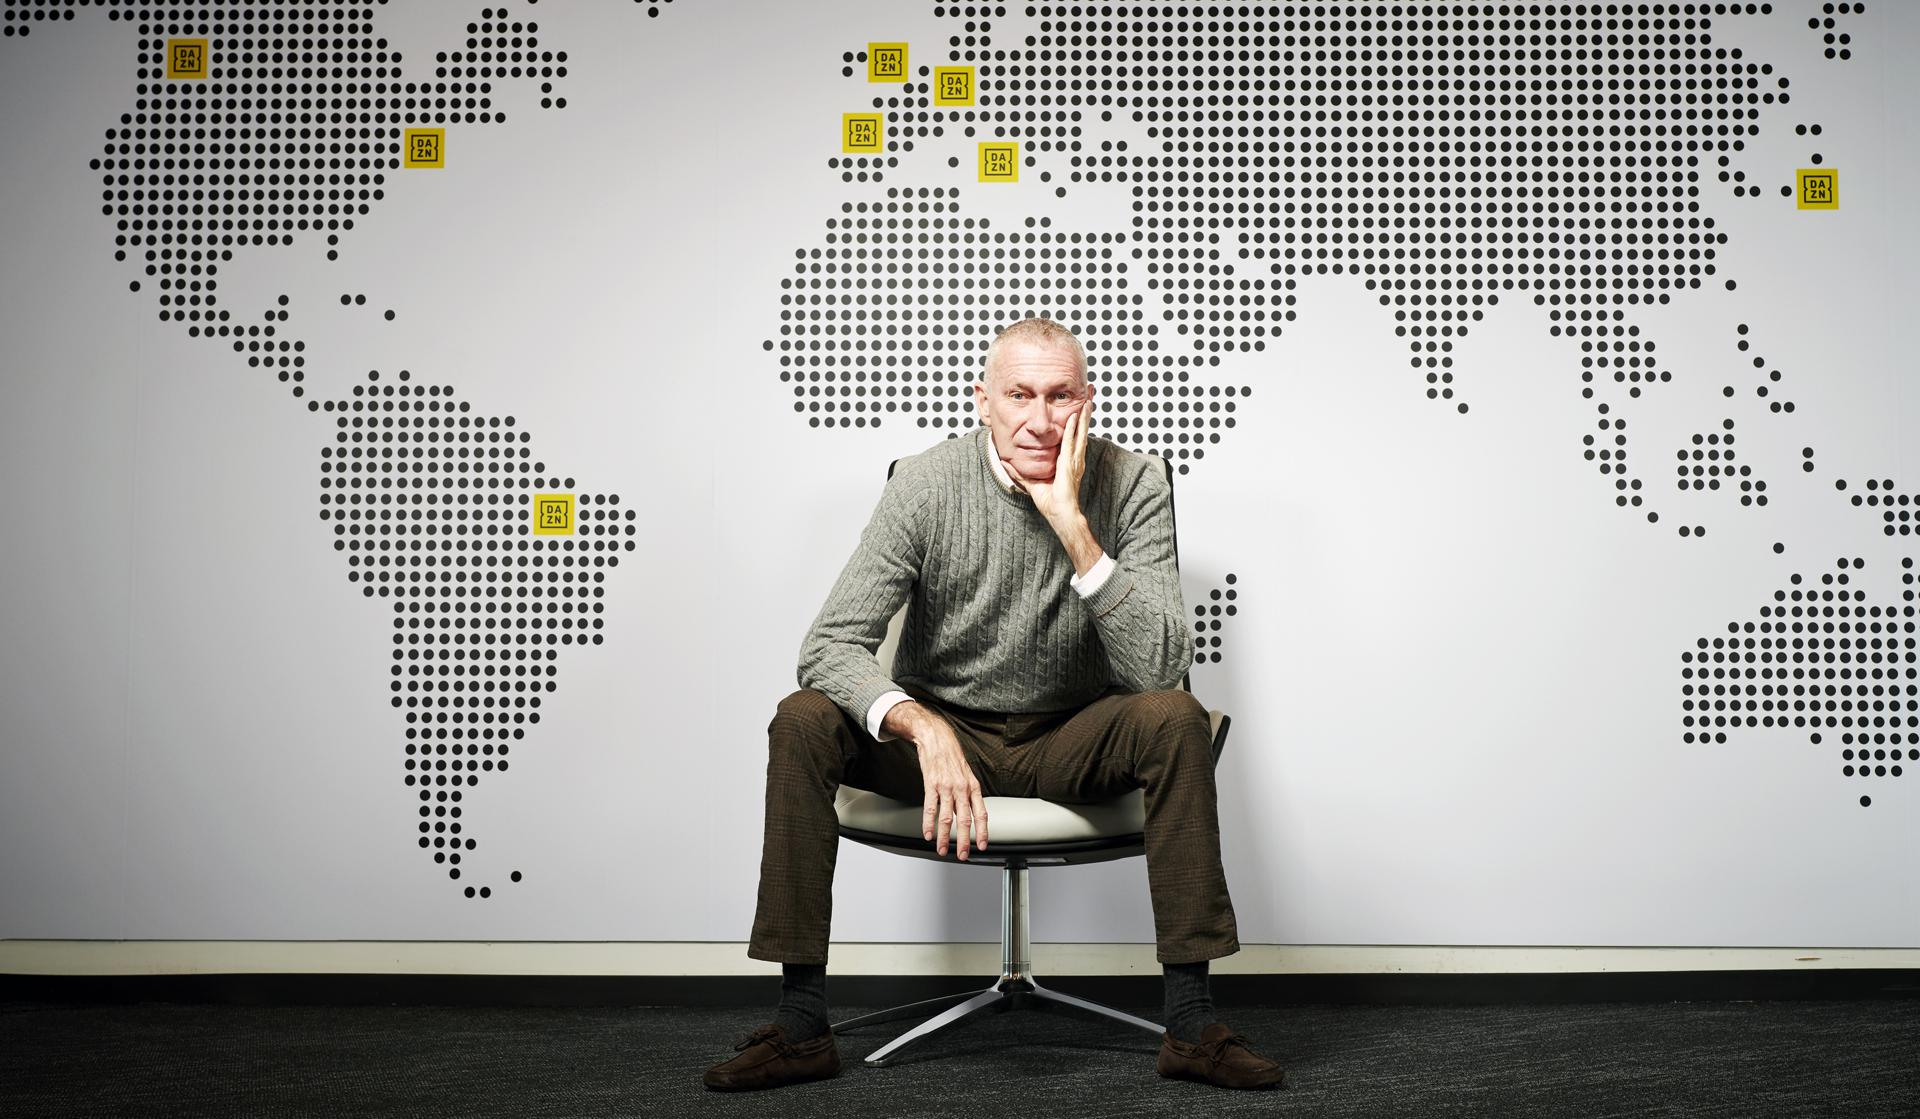 DAZN John Skipper by Jamel Toppin for Forbes 22485